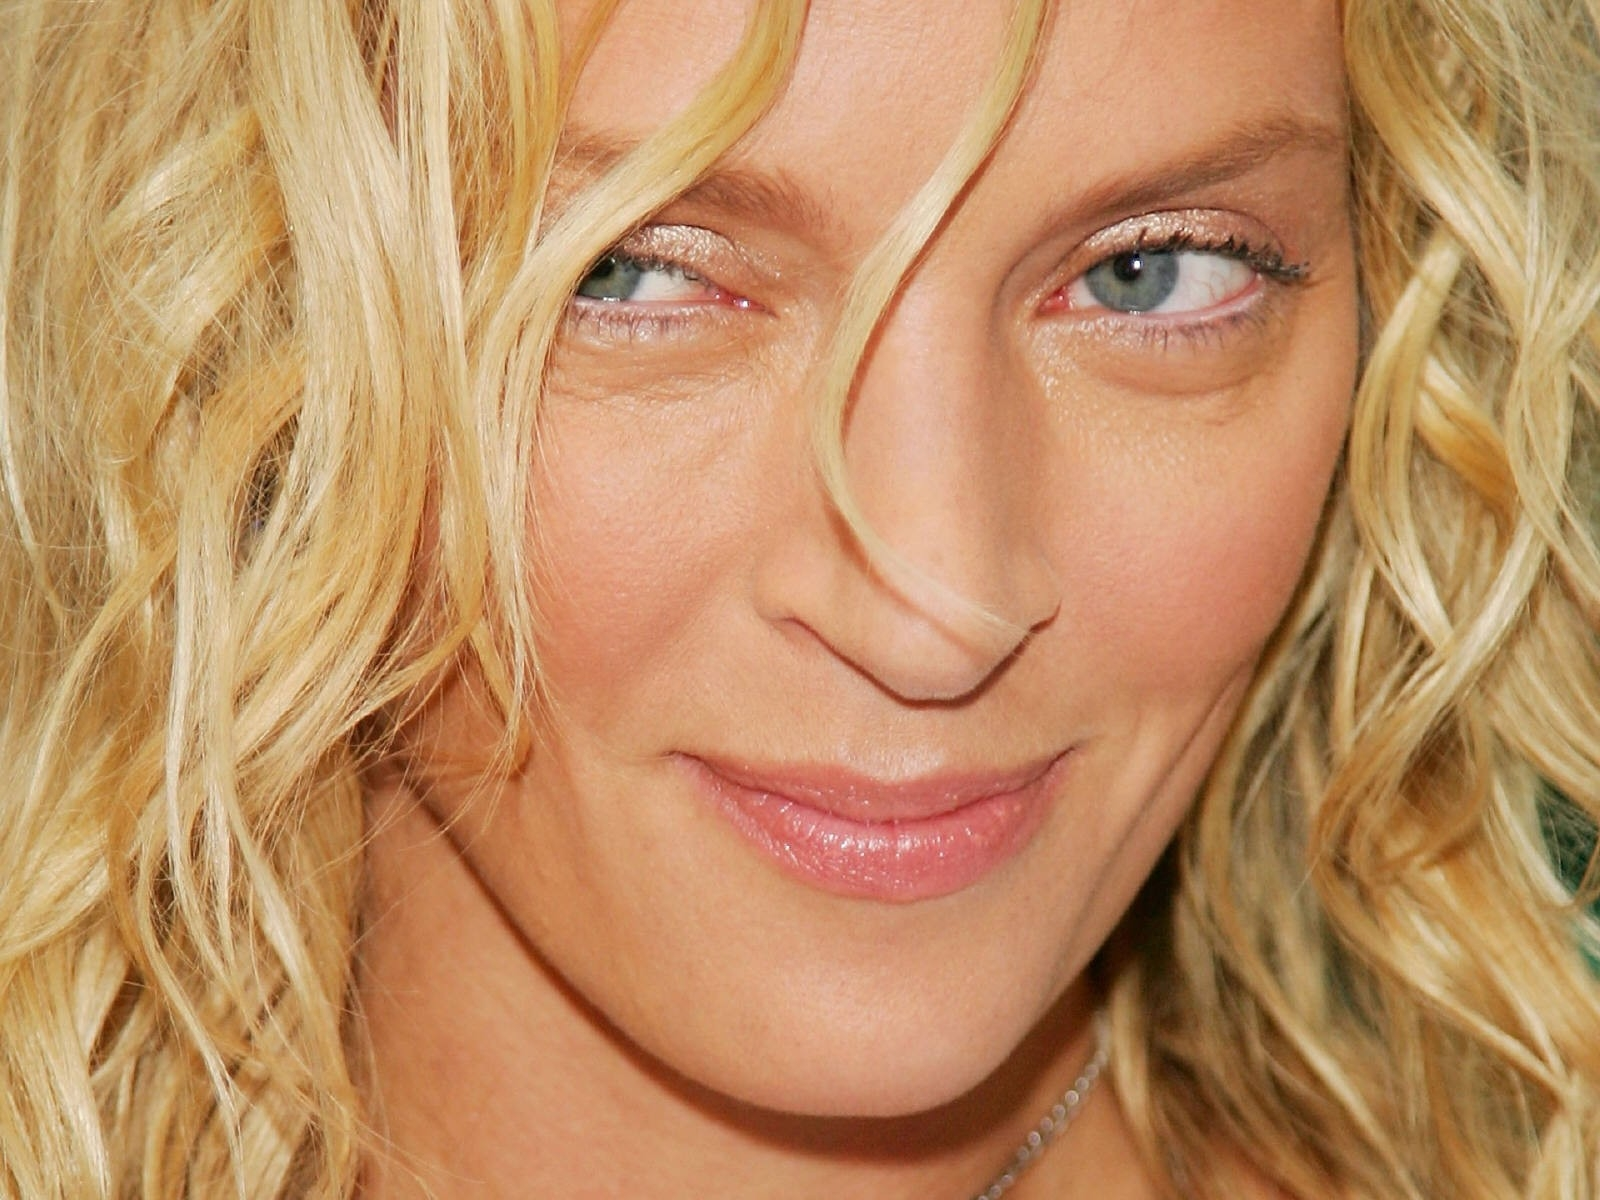 Wallpaper: una bella espressione di Uma Thurman